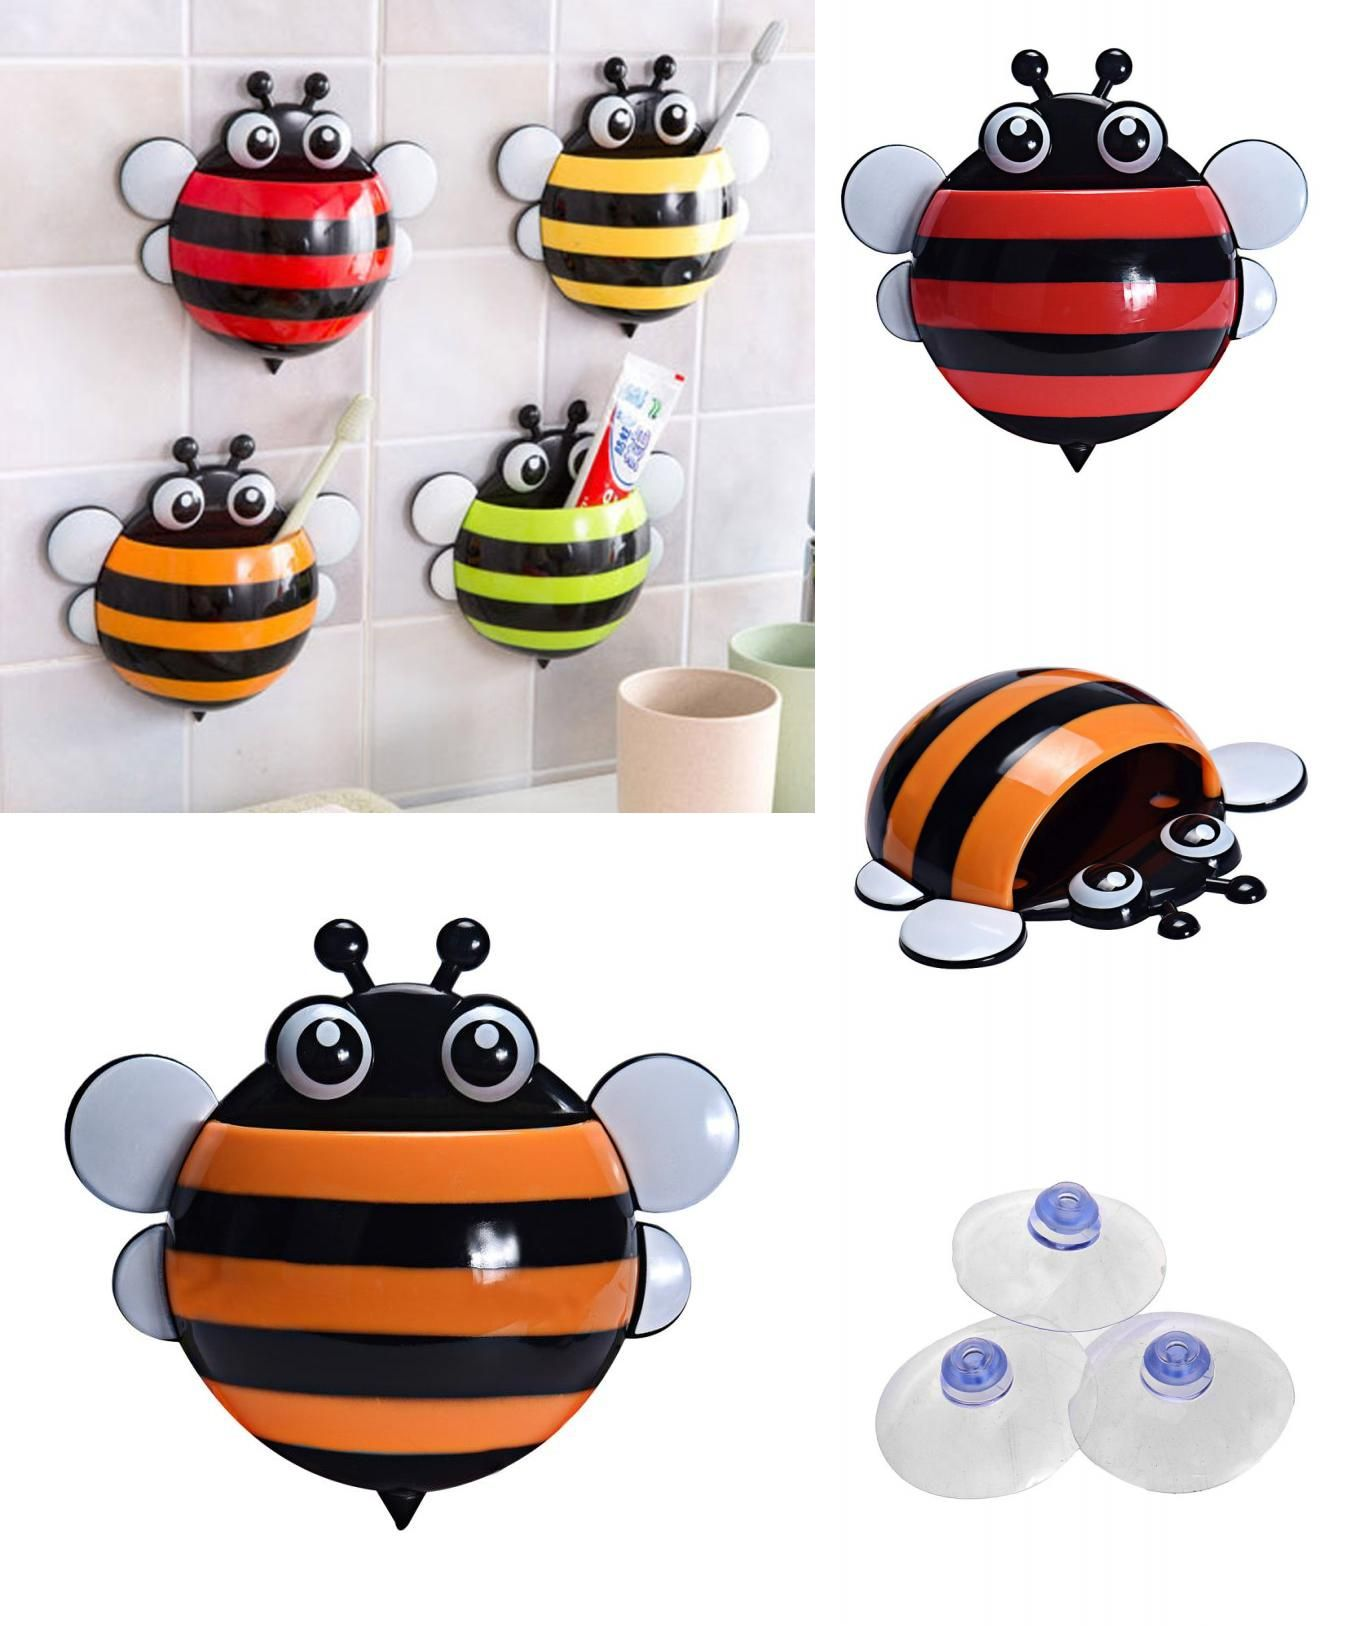 Visit To Buy Super Deal Toothbrush Holder Set Family Wall Bee Mount Rack Bath Bathroom Accessories Banheiro